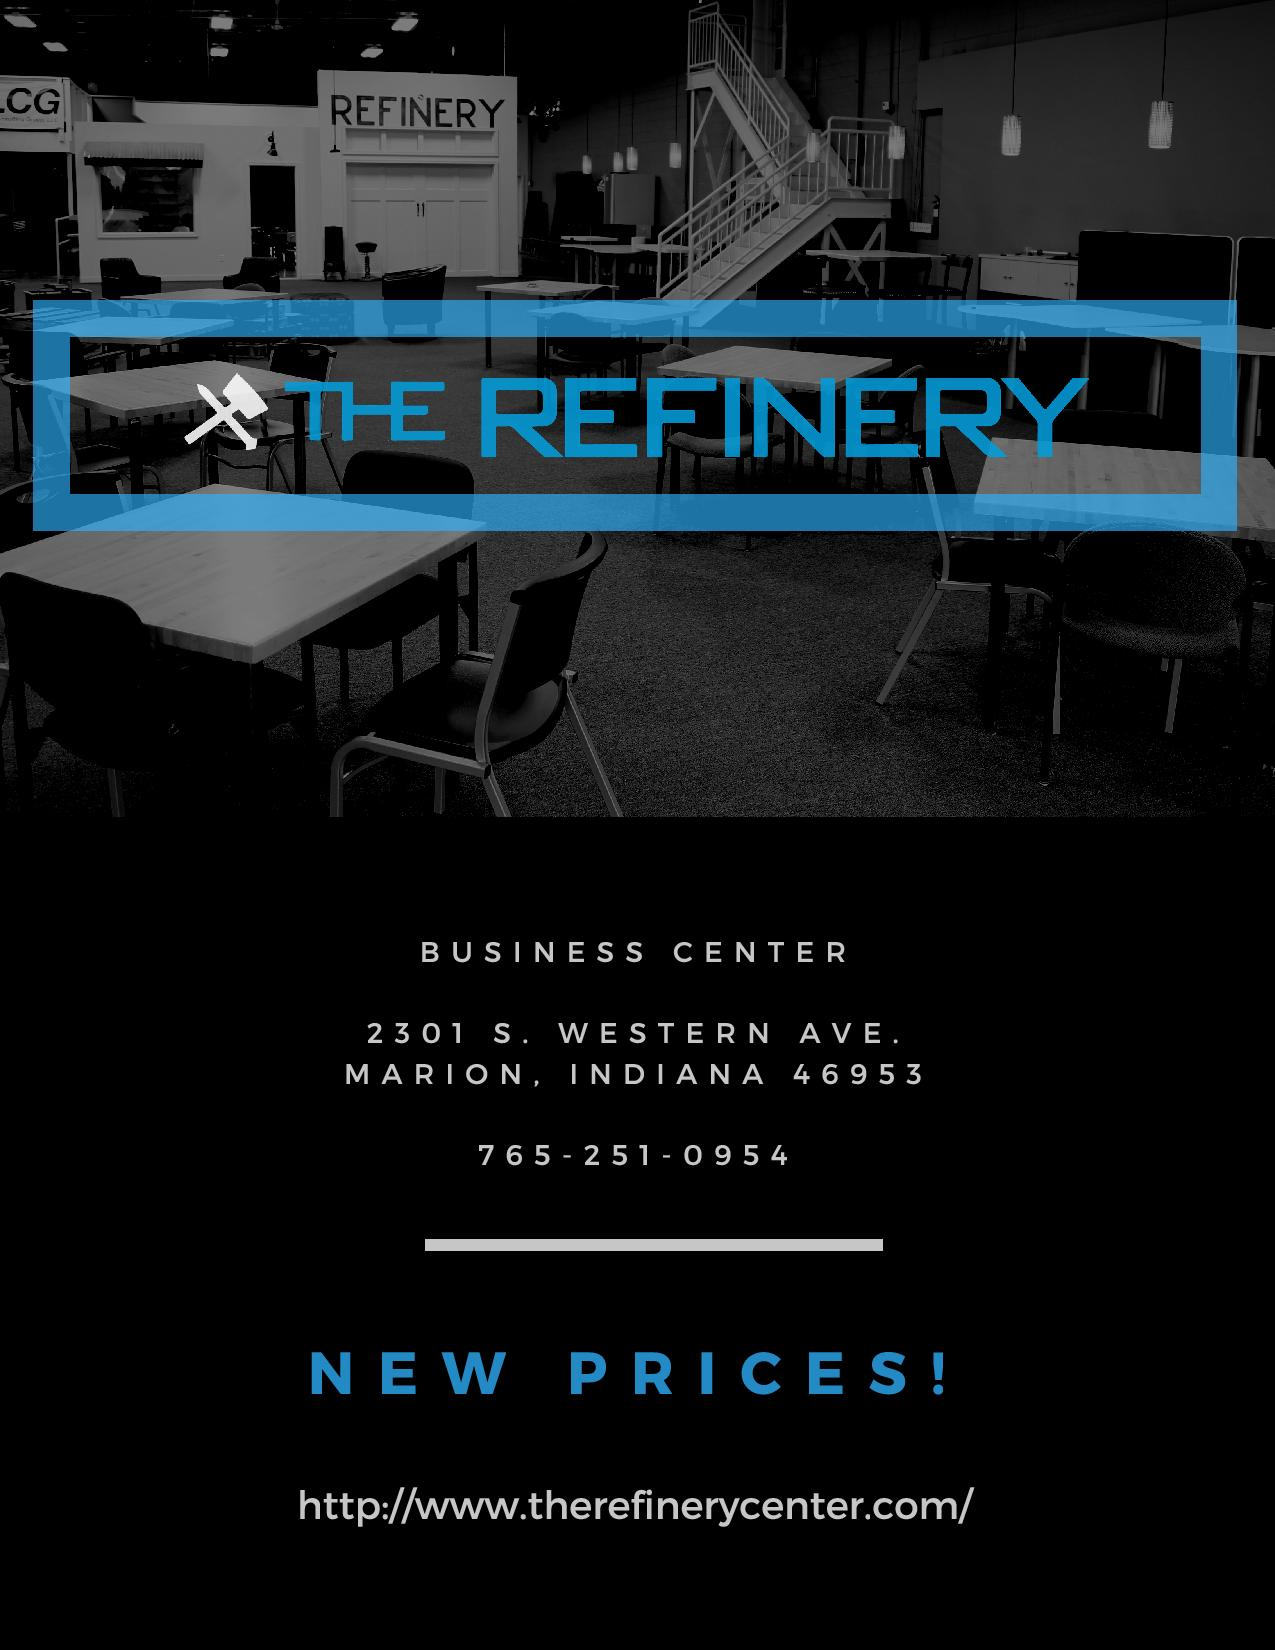 Refinery_NewPrices_Test2-page-001.jpg